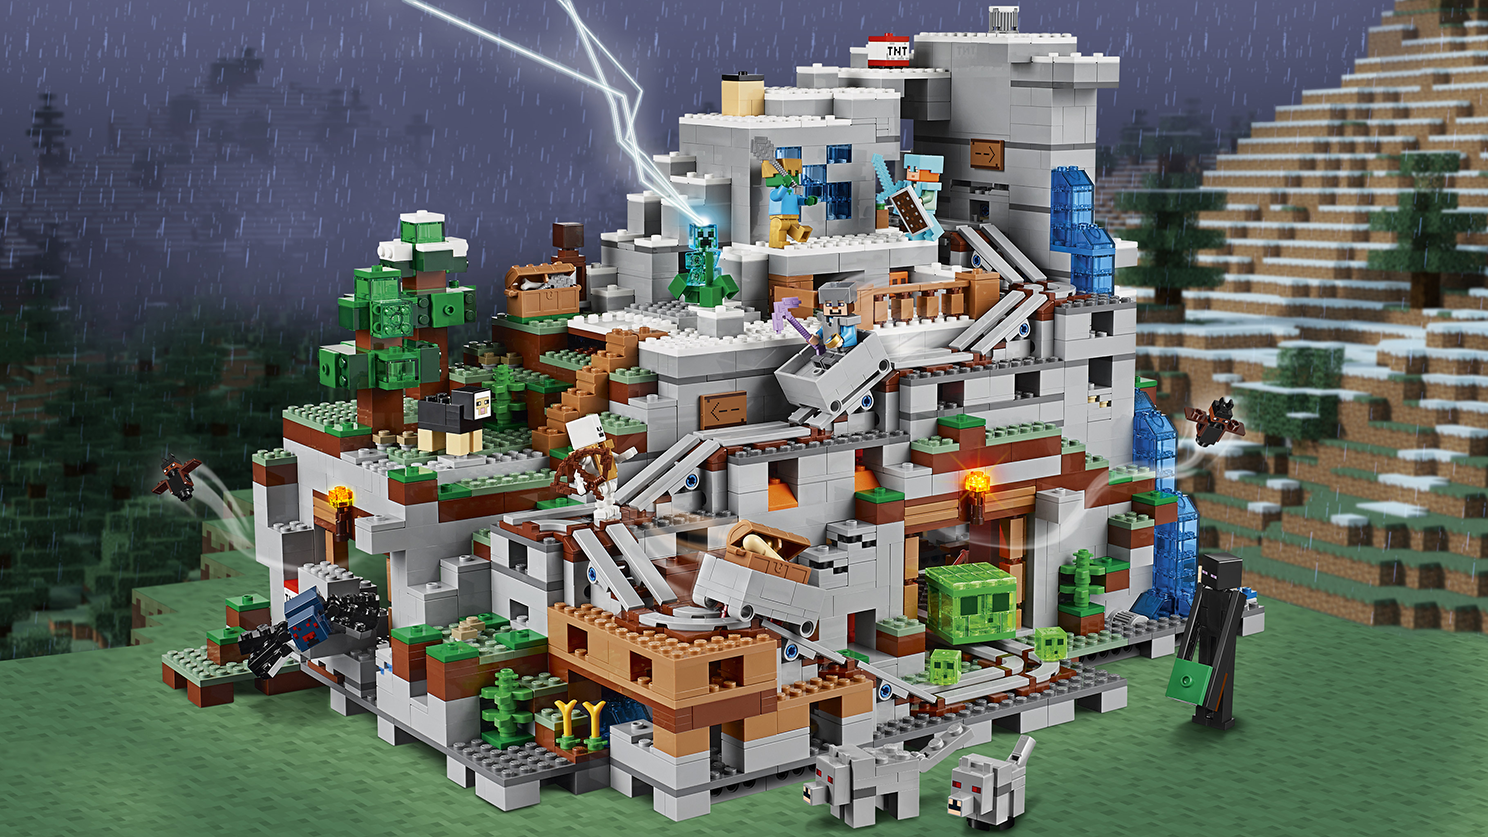 LEGO Minecraft - 21137 Mountain Cave Set - Explore the biggest LEGO Minecraft set so far! With railroads and hidden caves this set opens up for hours of building and play.